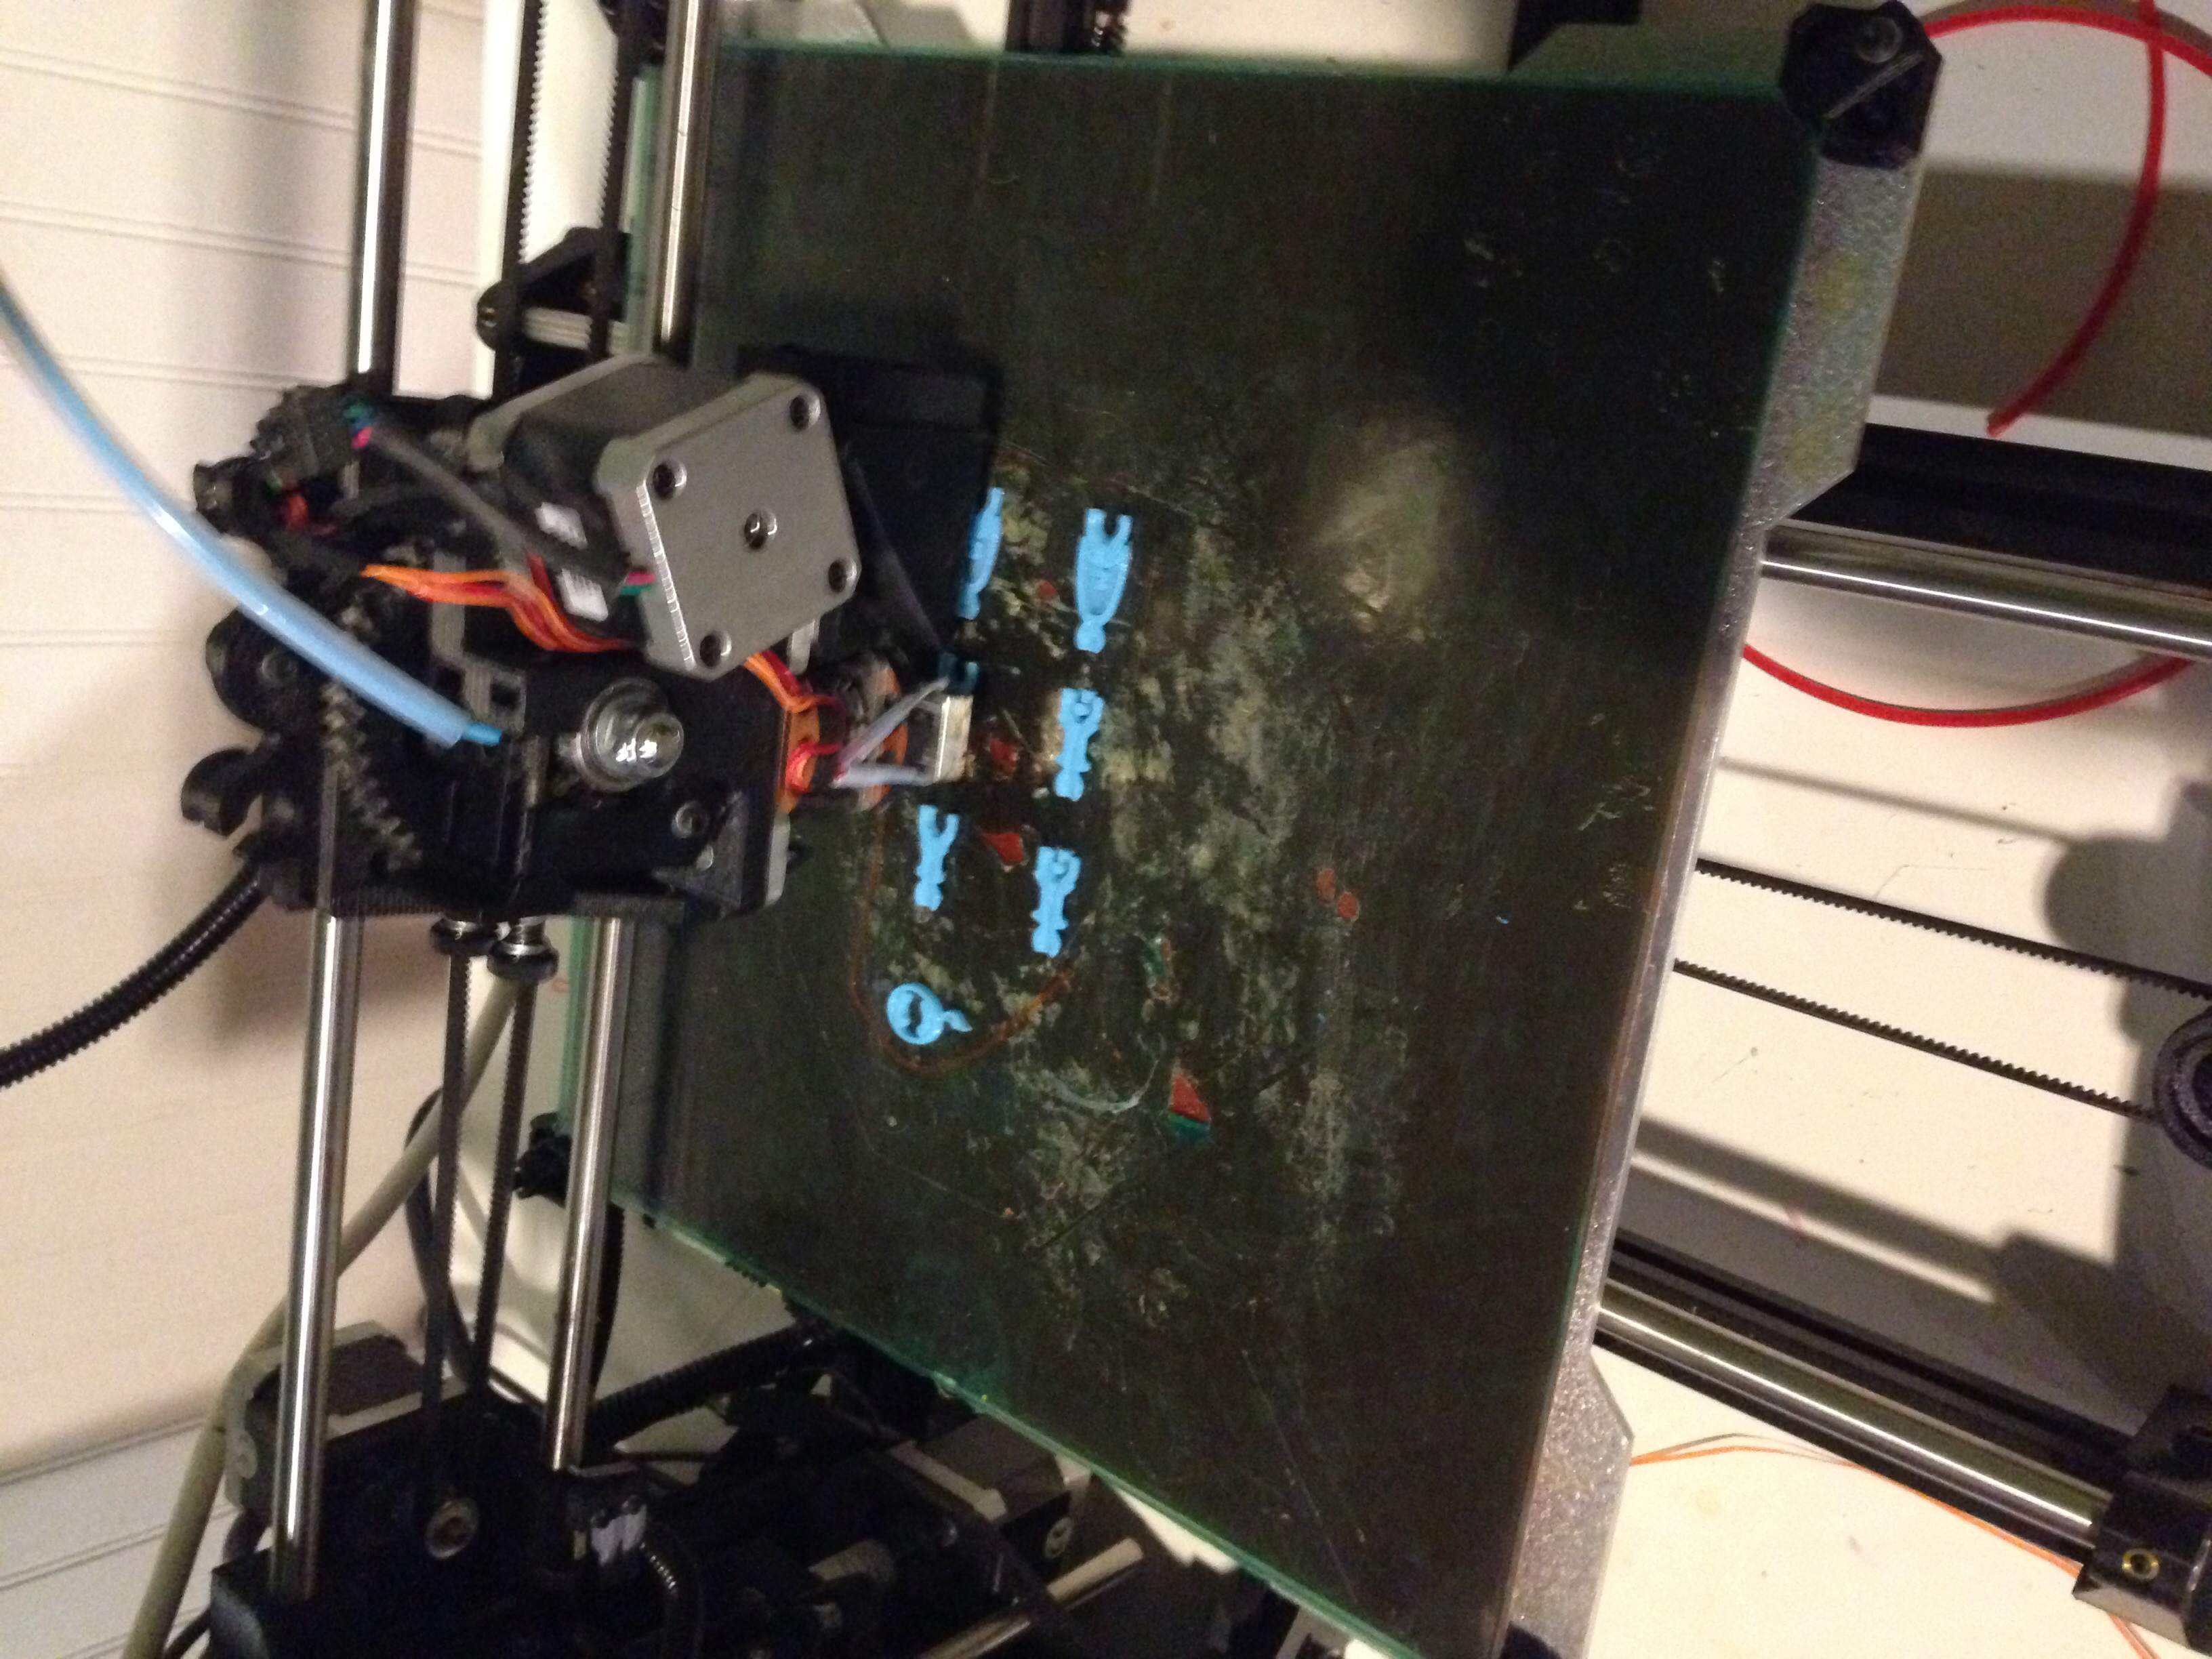 3D print machine making toy parts for a figurine.